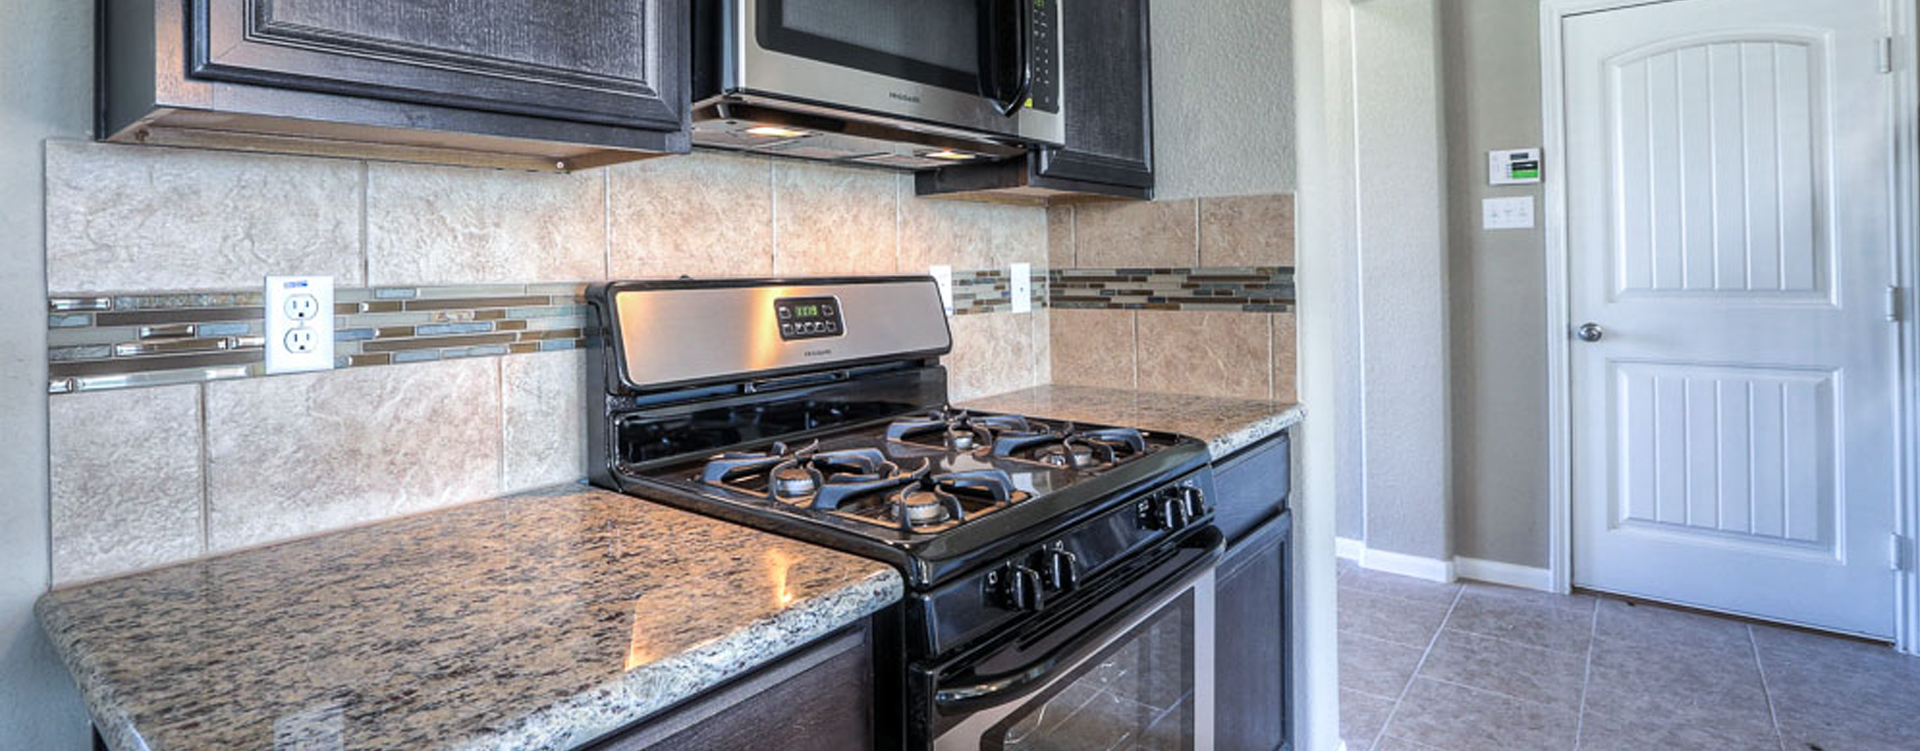 New kitchen in Manvel Texas at Rodeo Palms Community